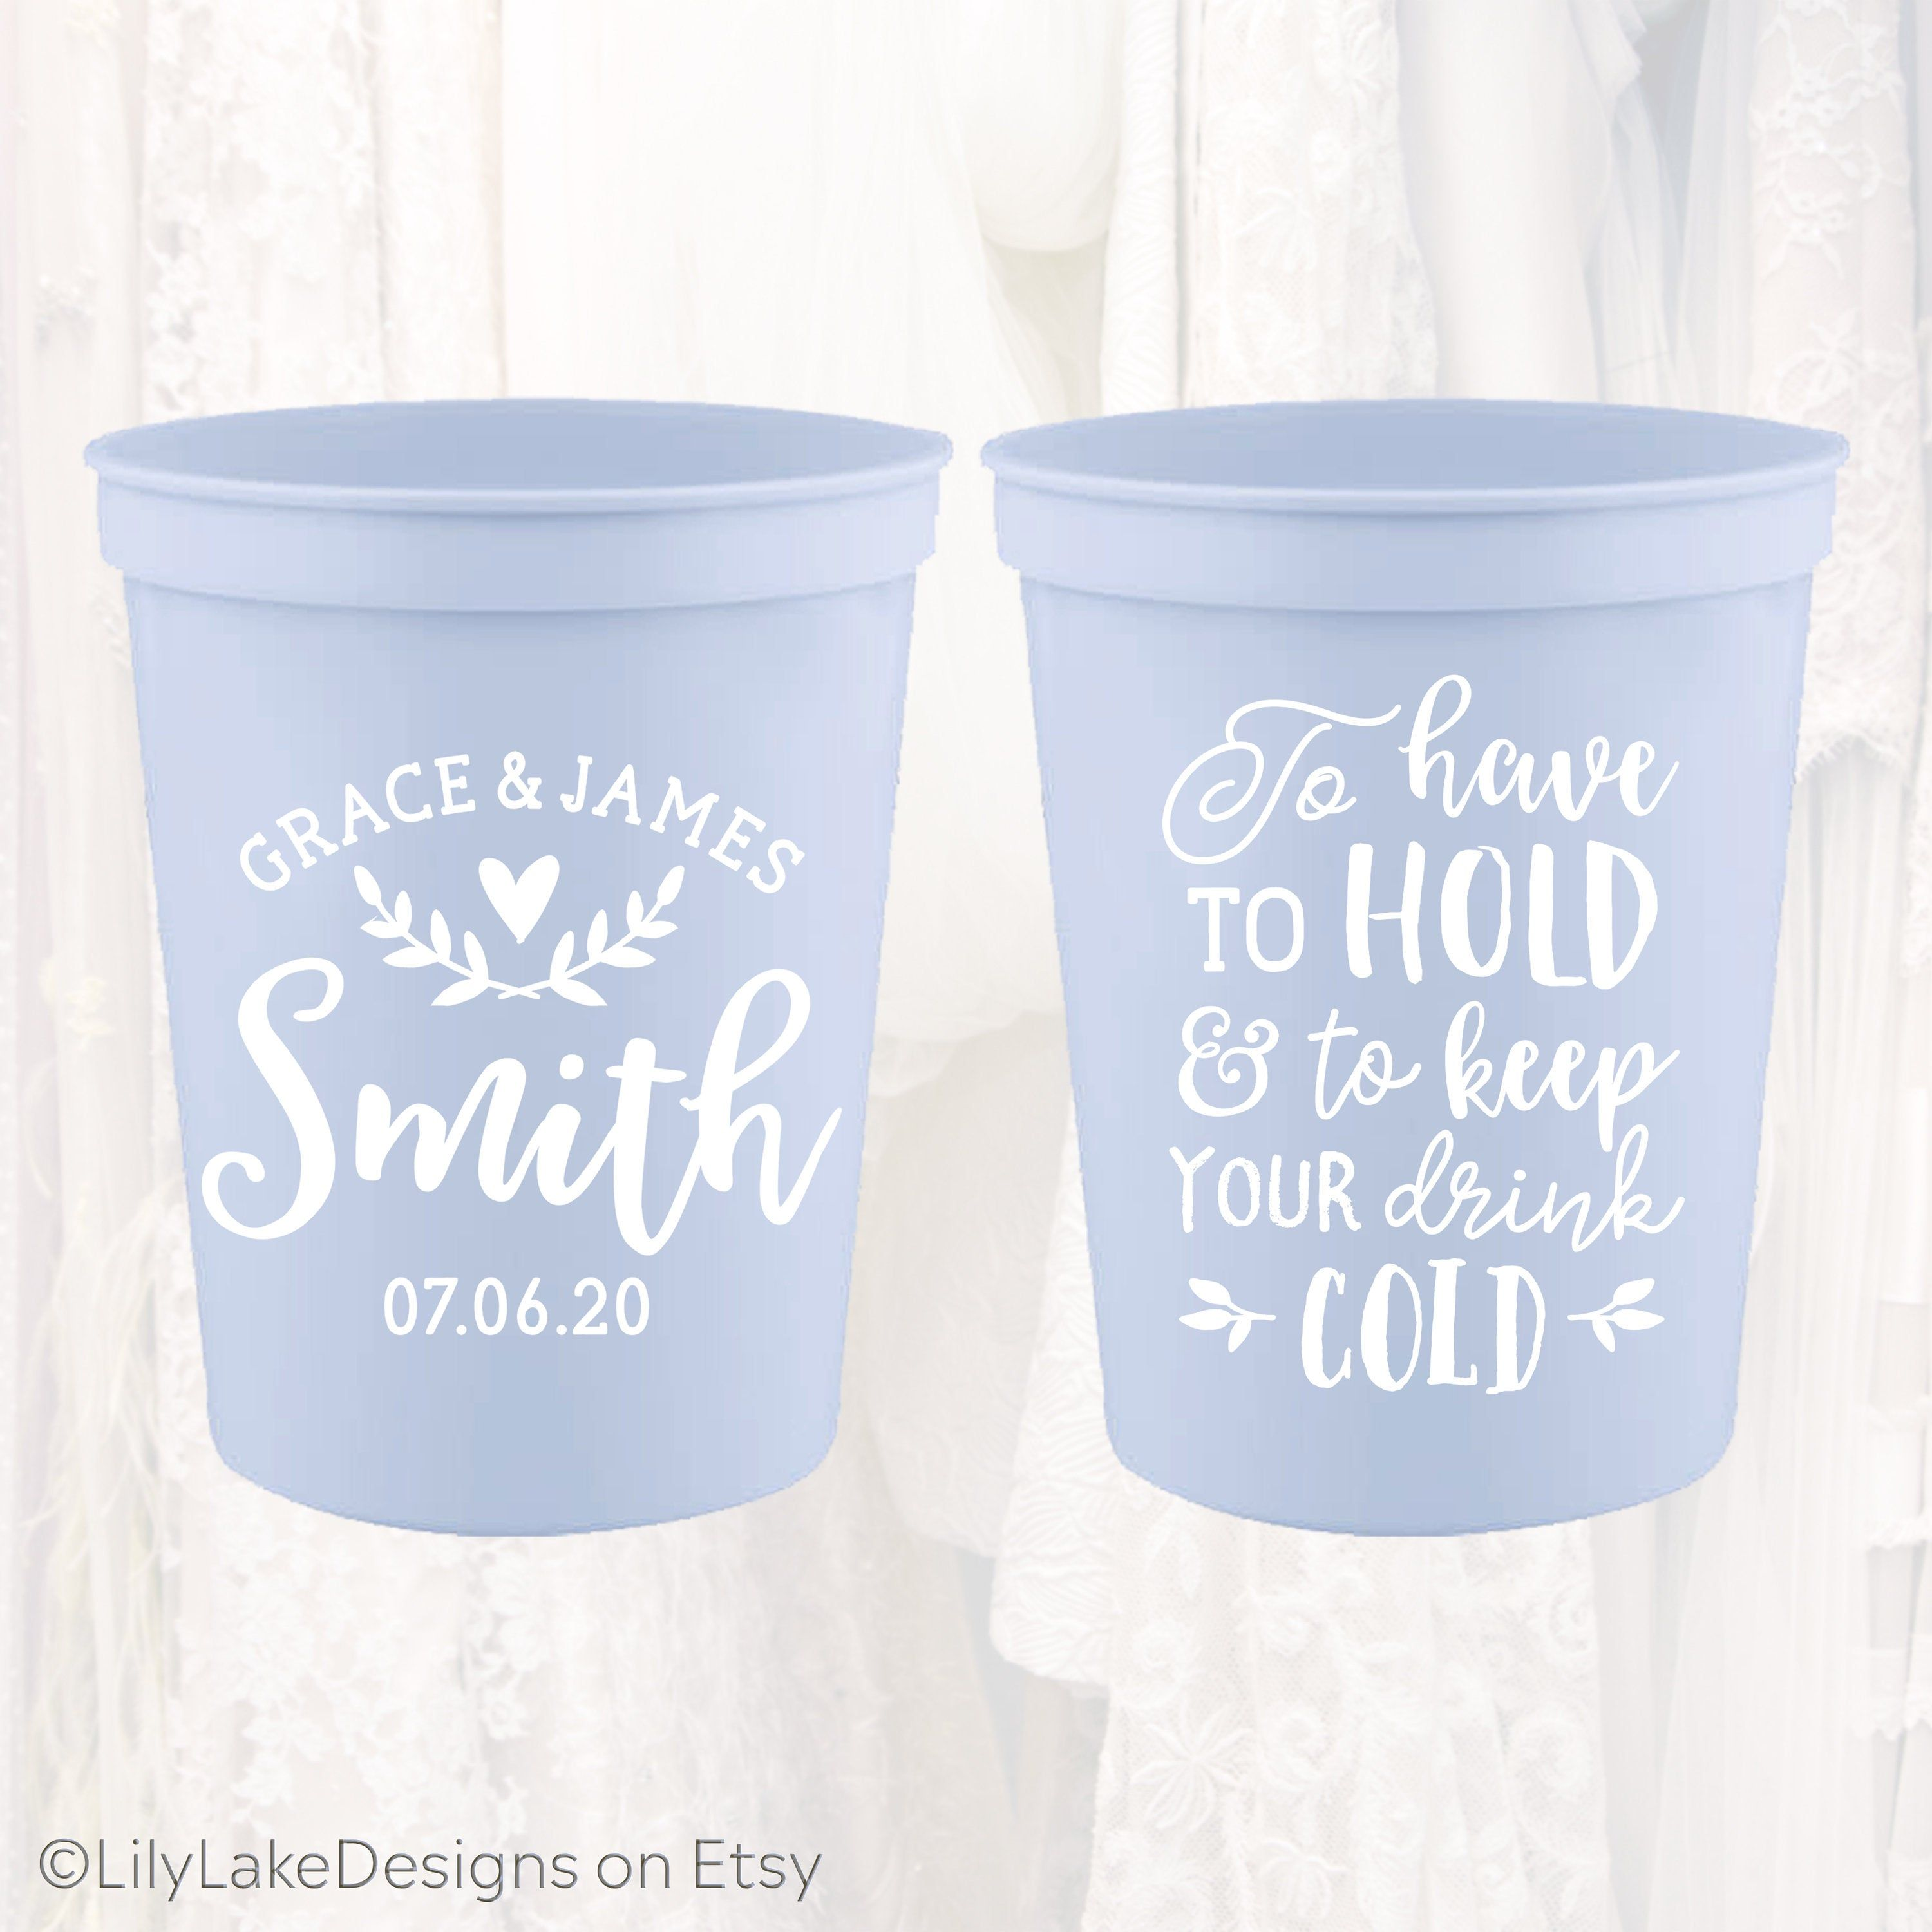 Personalized Wedding Cups To Have To Hold And To Keep Your Etsy In 2020 Wedding Cups Personalized Cup Favors Wedding Wedding Plastic Cups